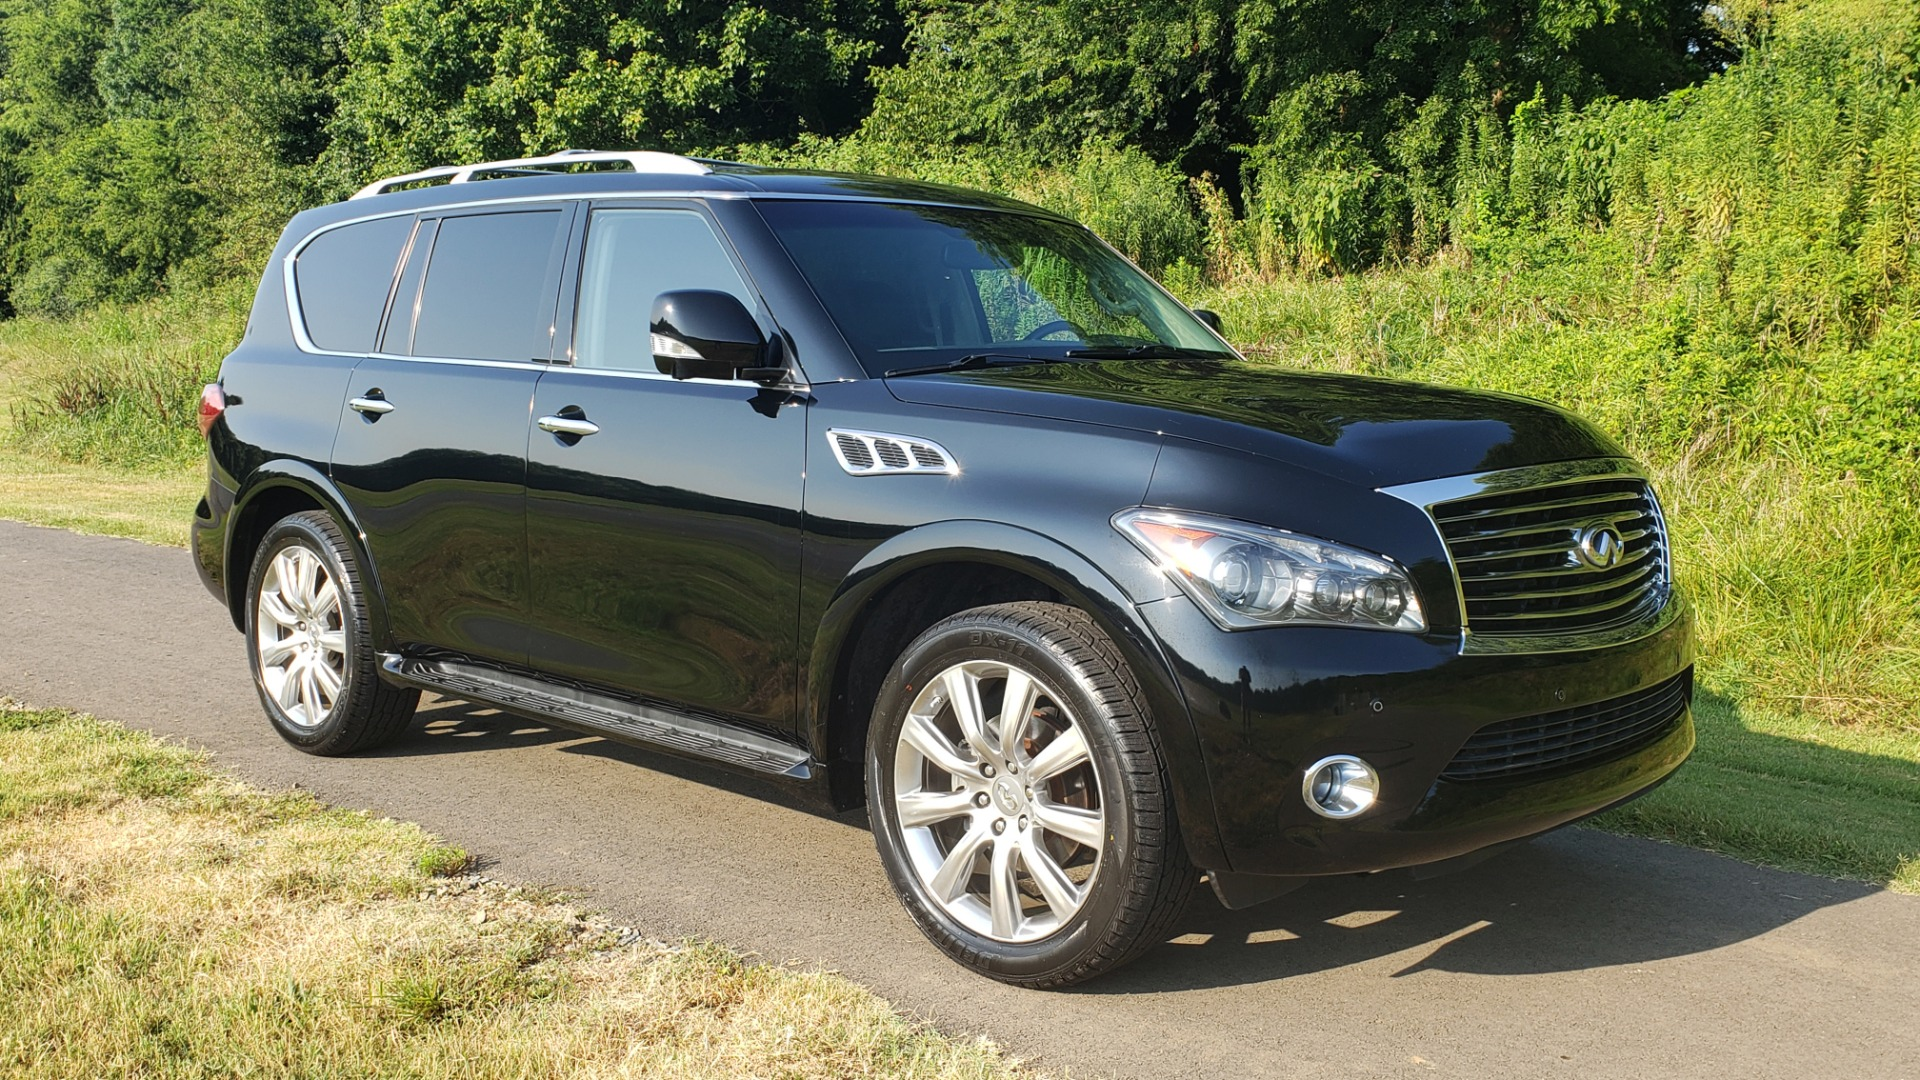 Used 2013 INFINITI QX56 THEATER PKG / NAV / SUNROOF / HEATED SEATS / REARVIEW for sale Sold at Formula Imports in Charlotte NC 28227 5